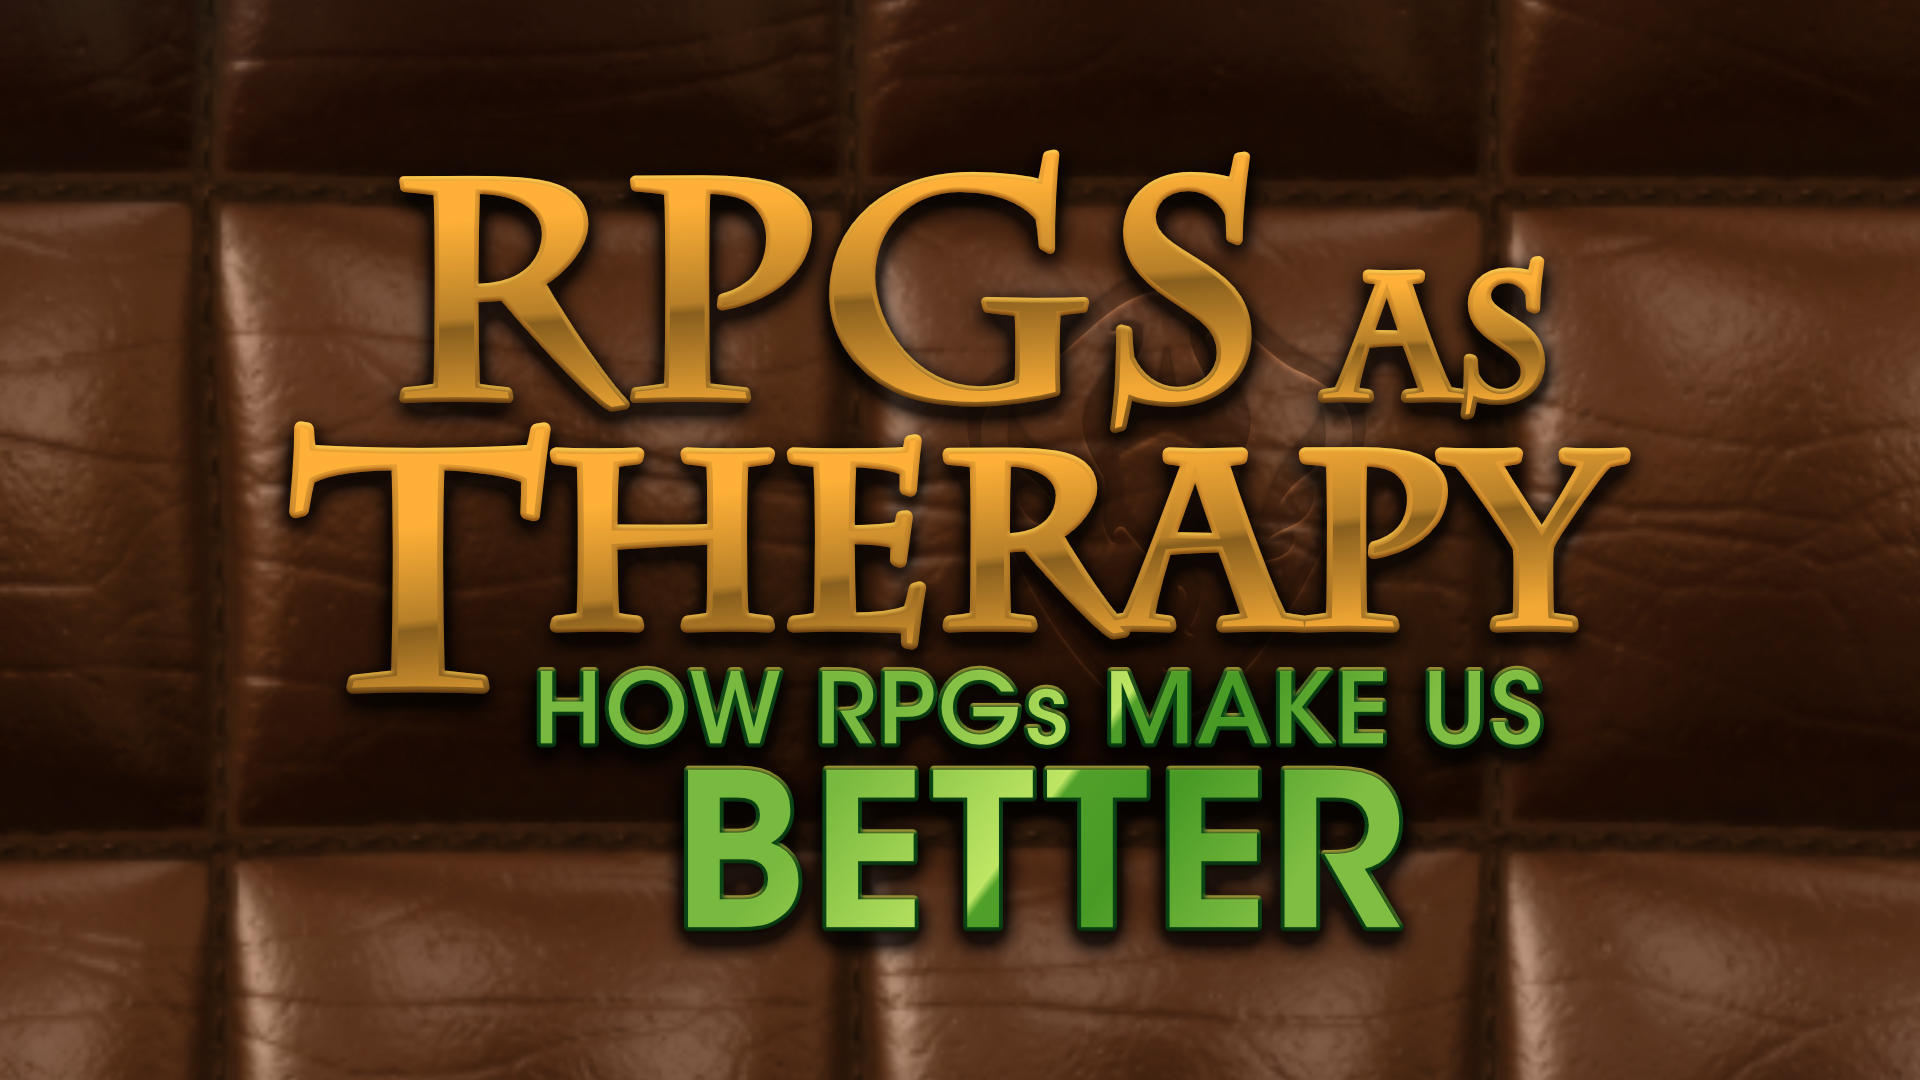 RPGs as Therapy